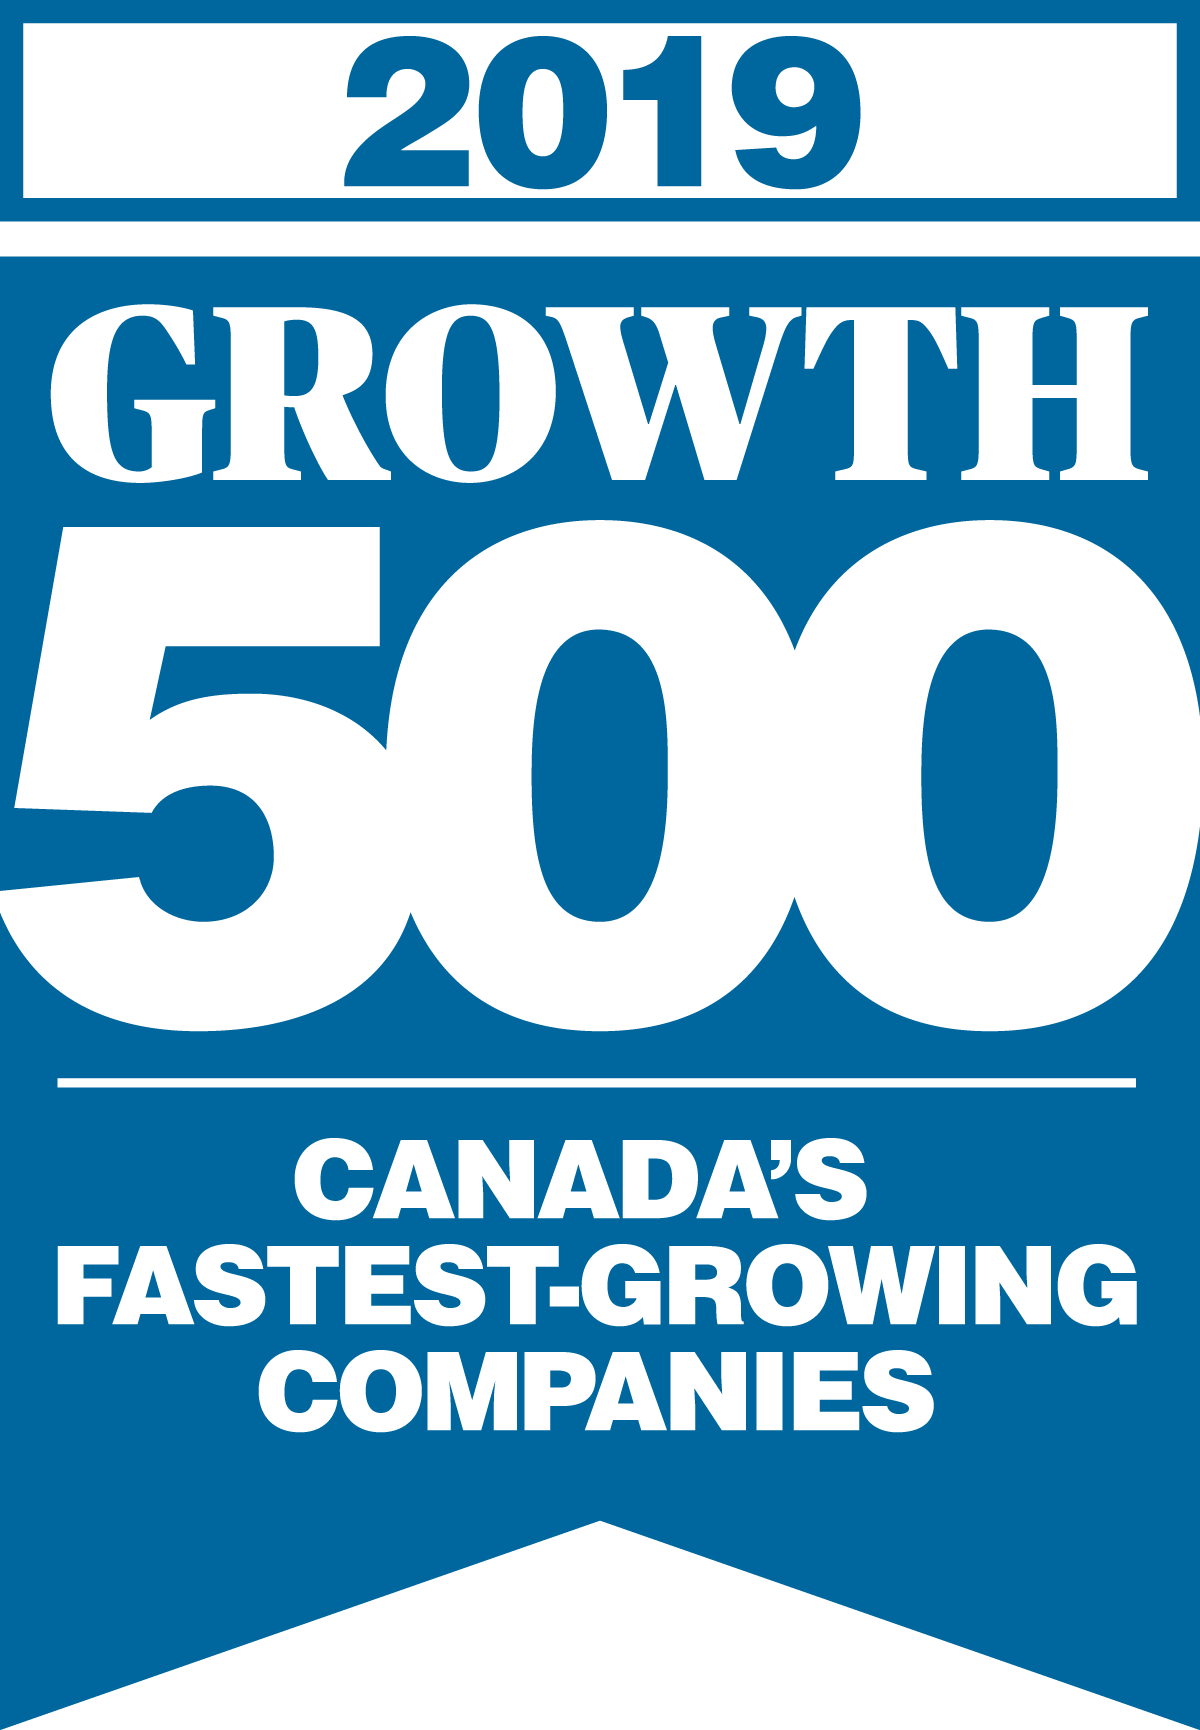 Growth 500, 2019 Logo.